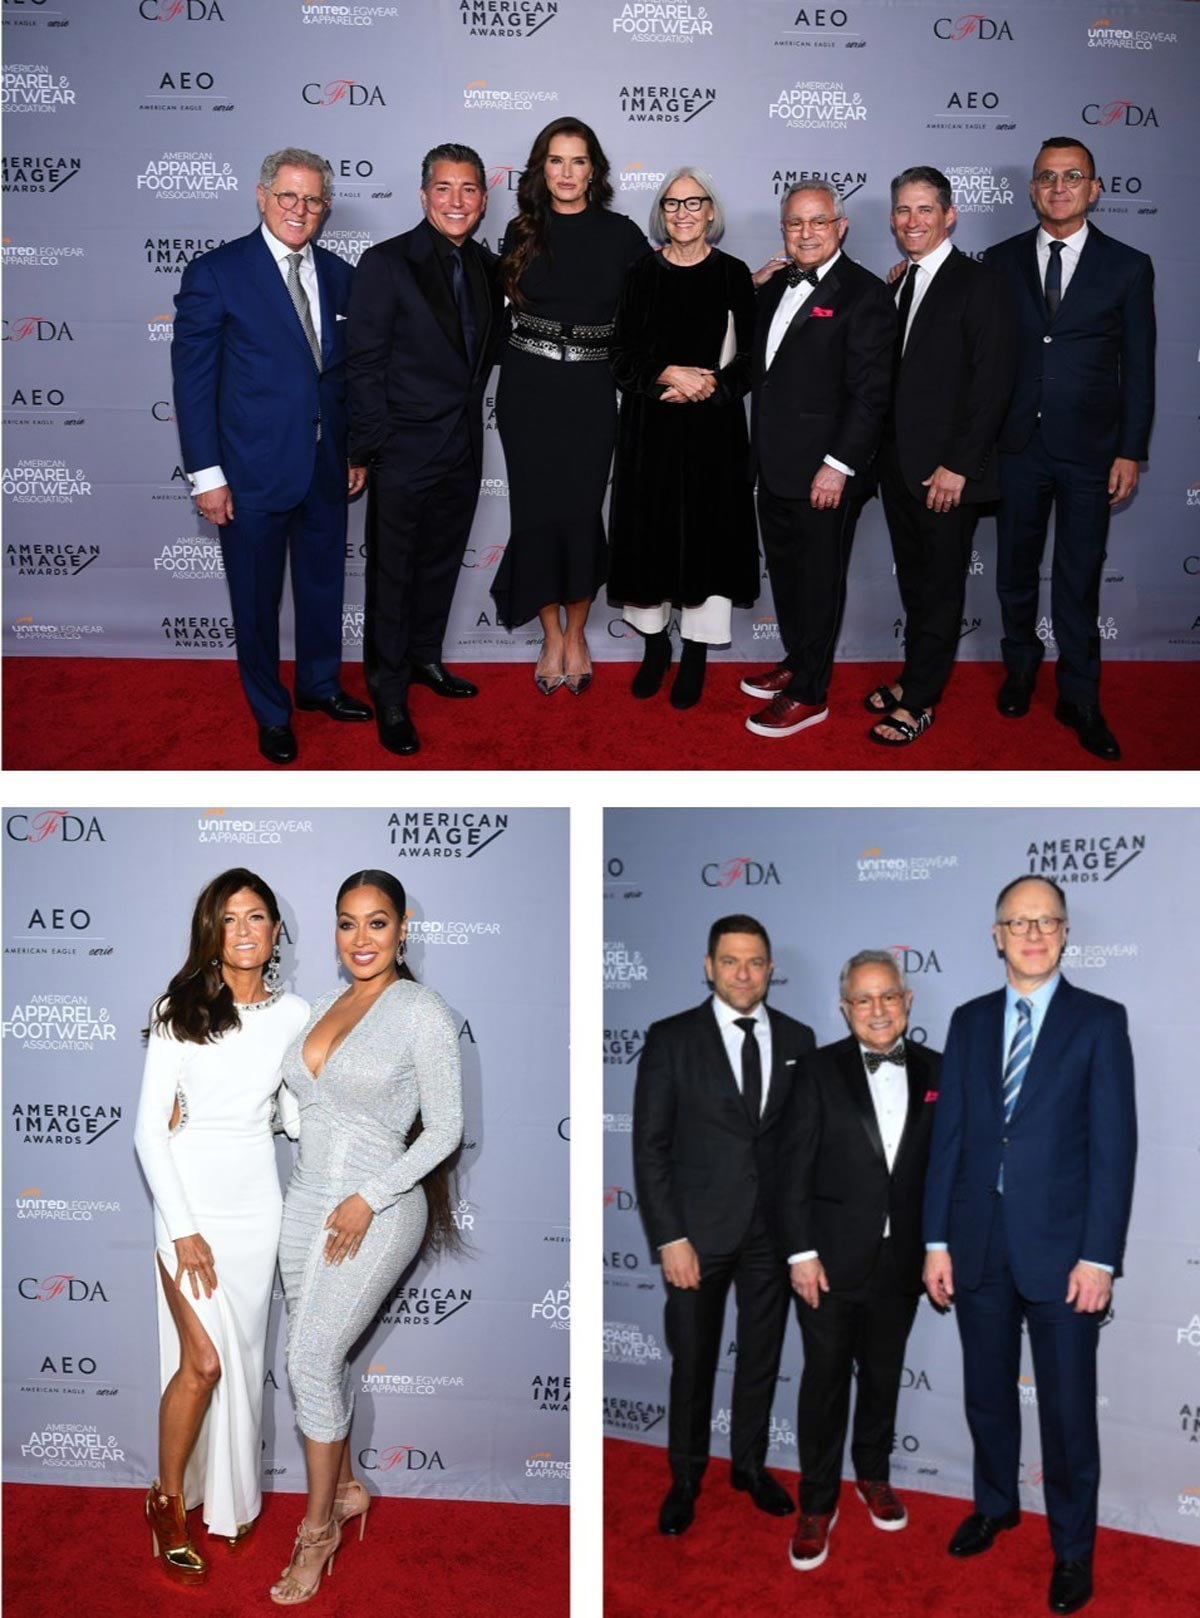 AAFA held 41st annual American Image Awards in NYC